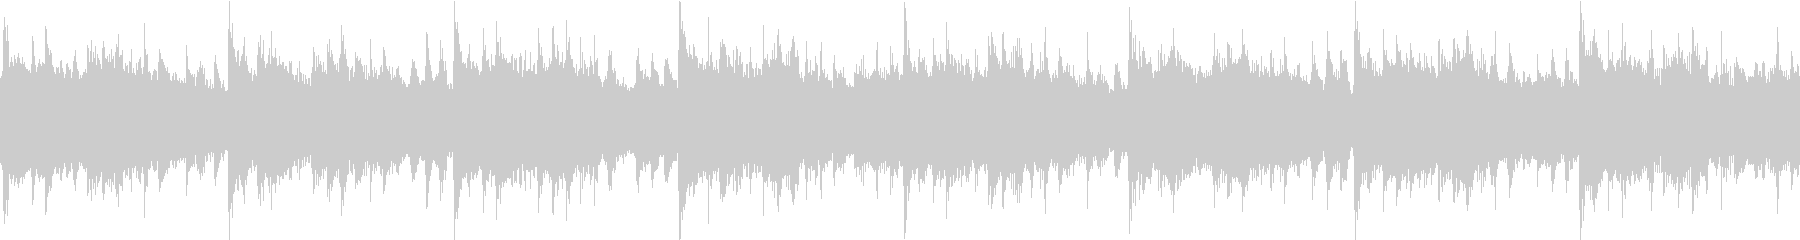 Motivating and in...'s unreproduced waveform